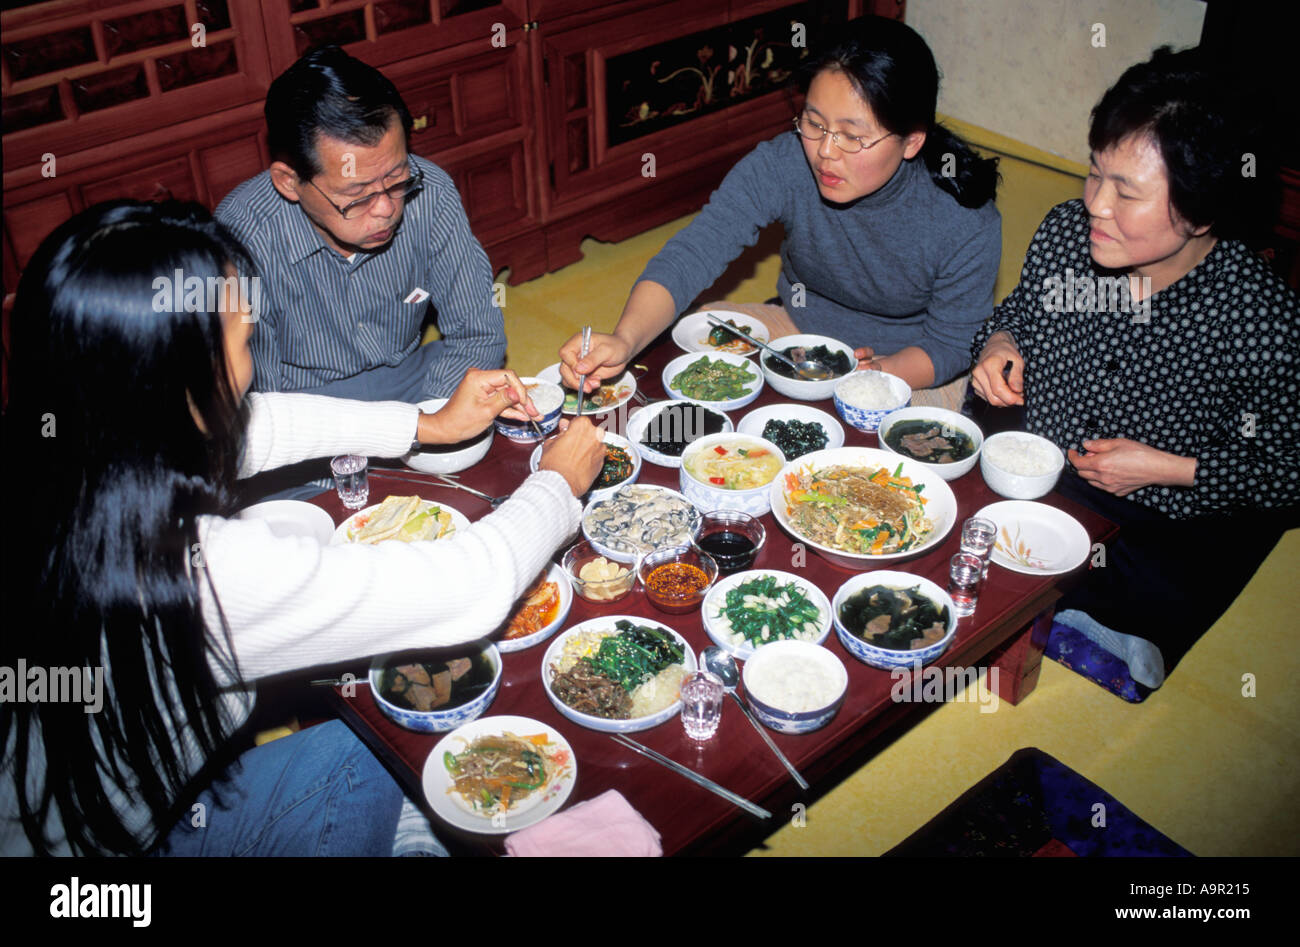 Korean family eating traditional food in typical home setting Stock Photo